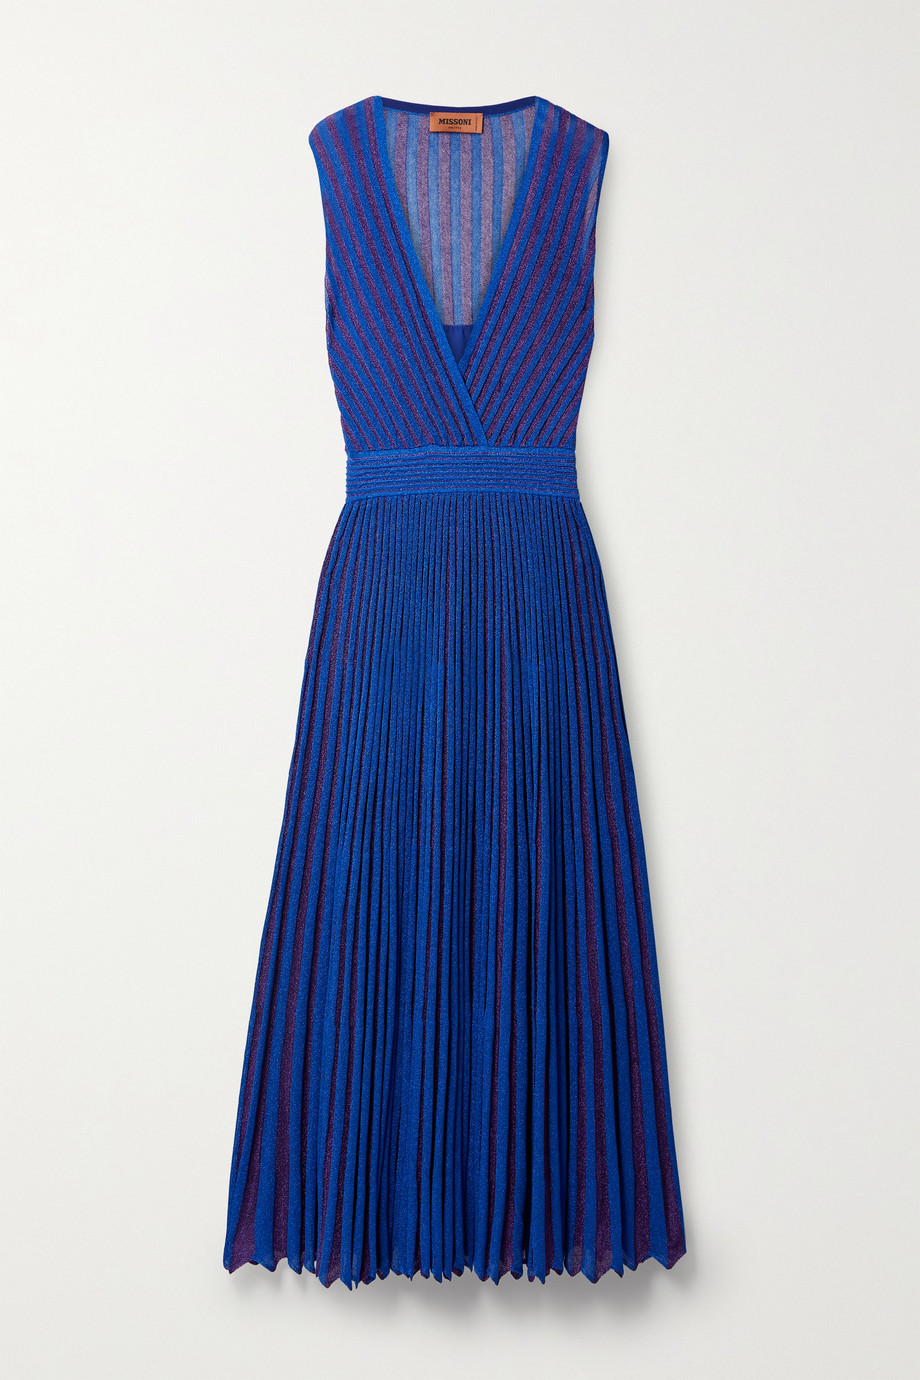 Missoni Pleated striped metallic crochet-knit maxi dress